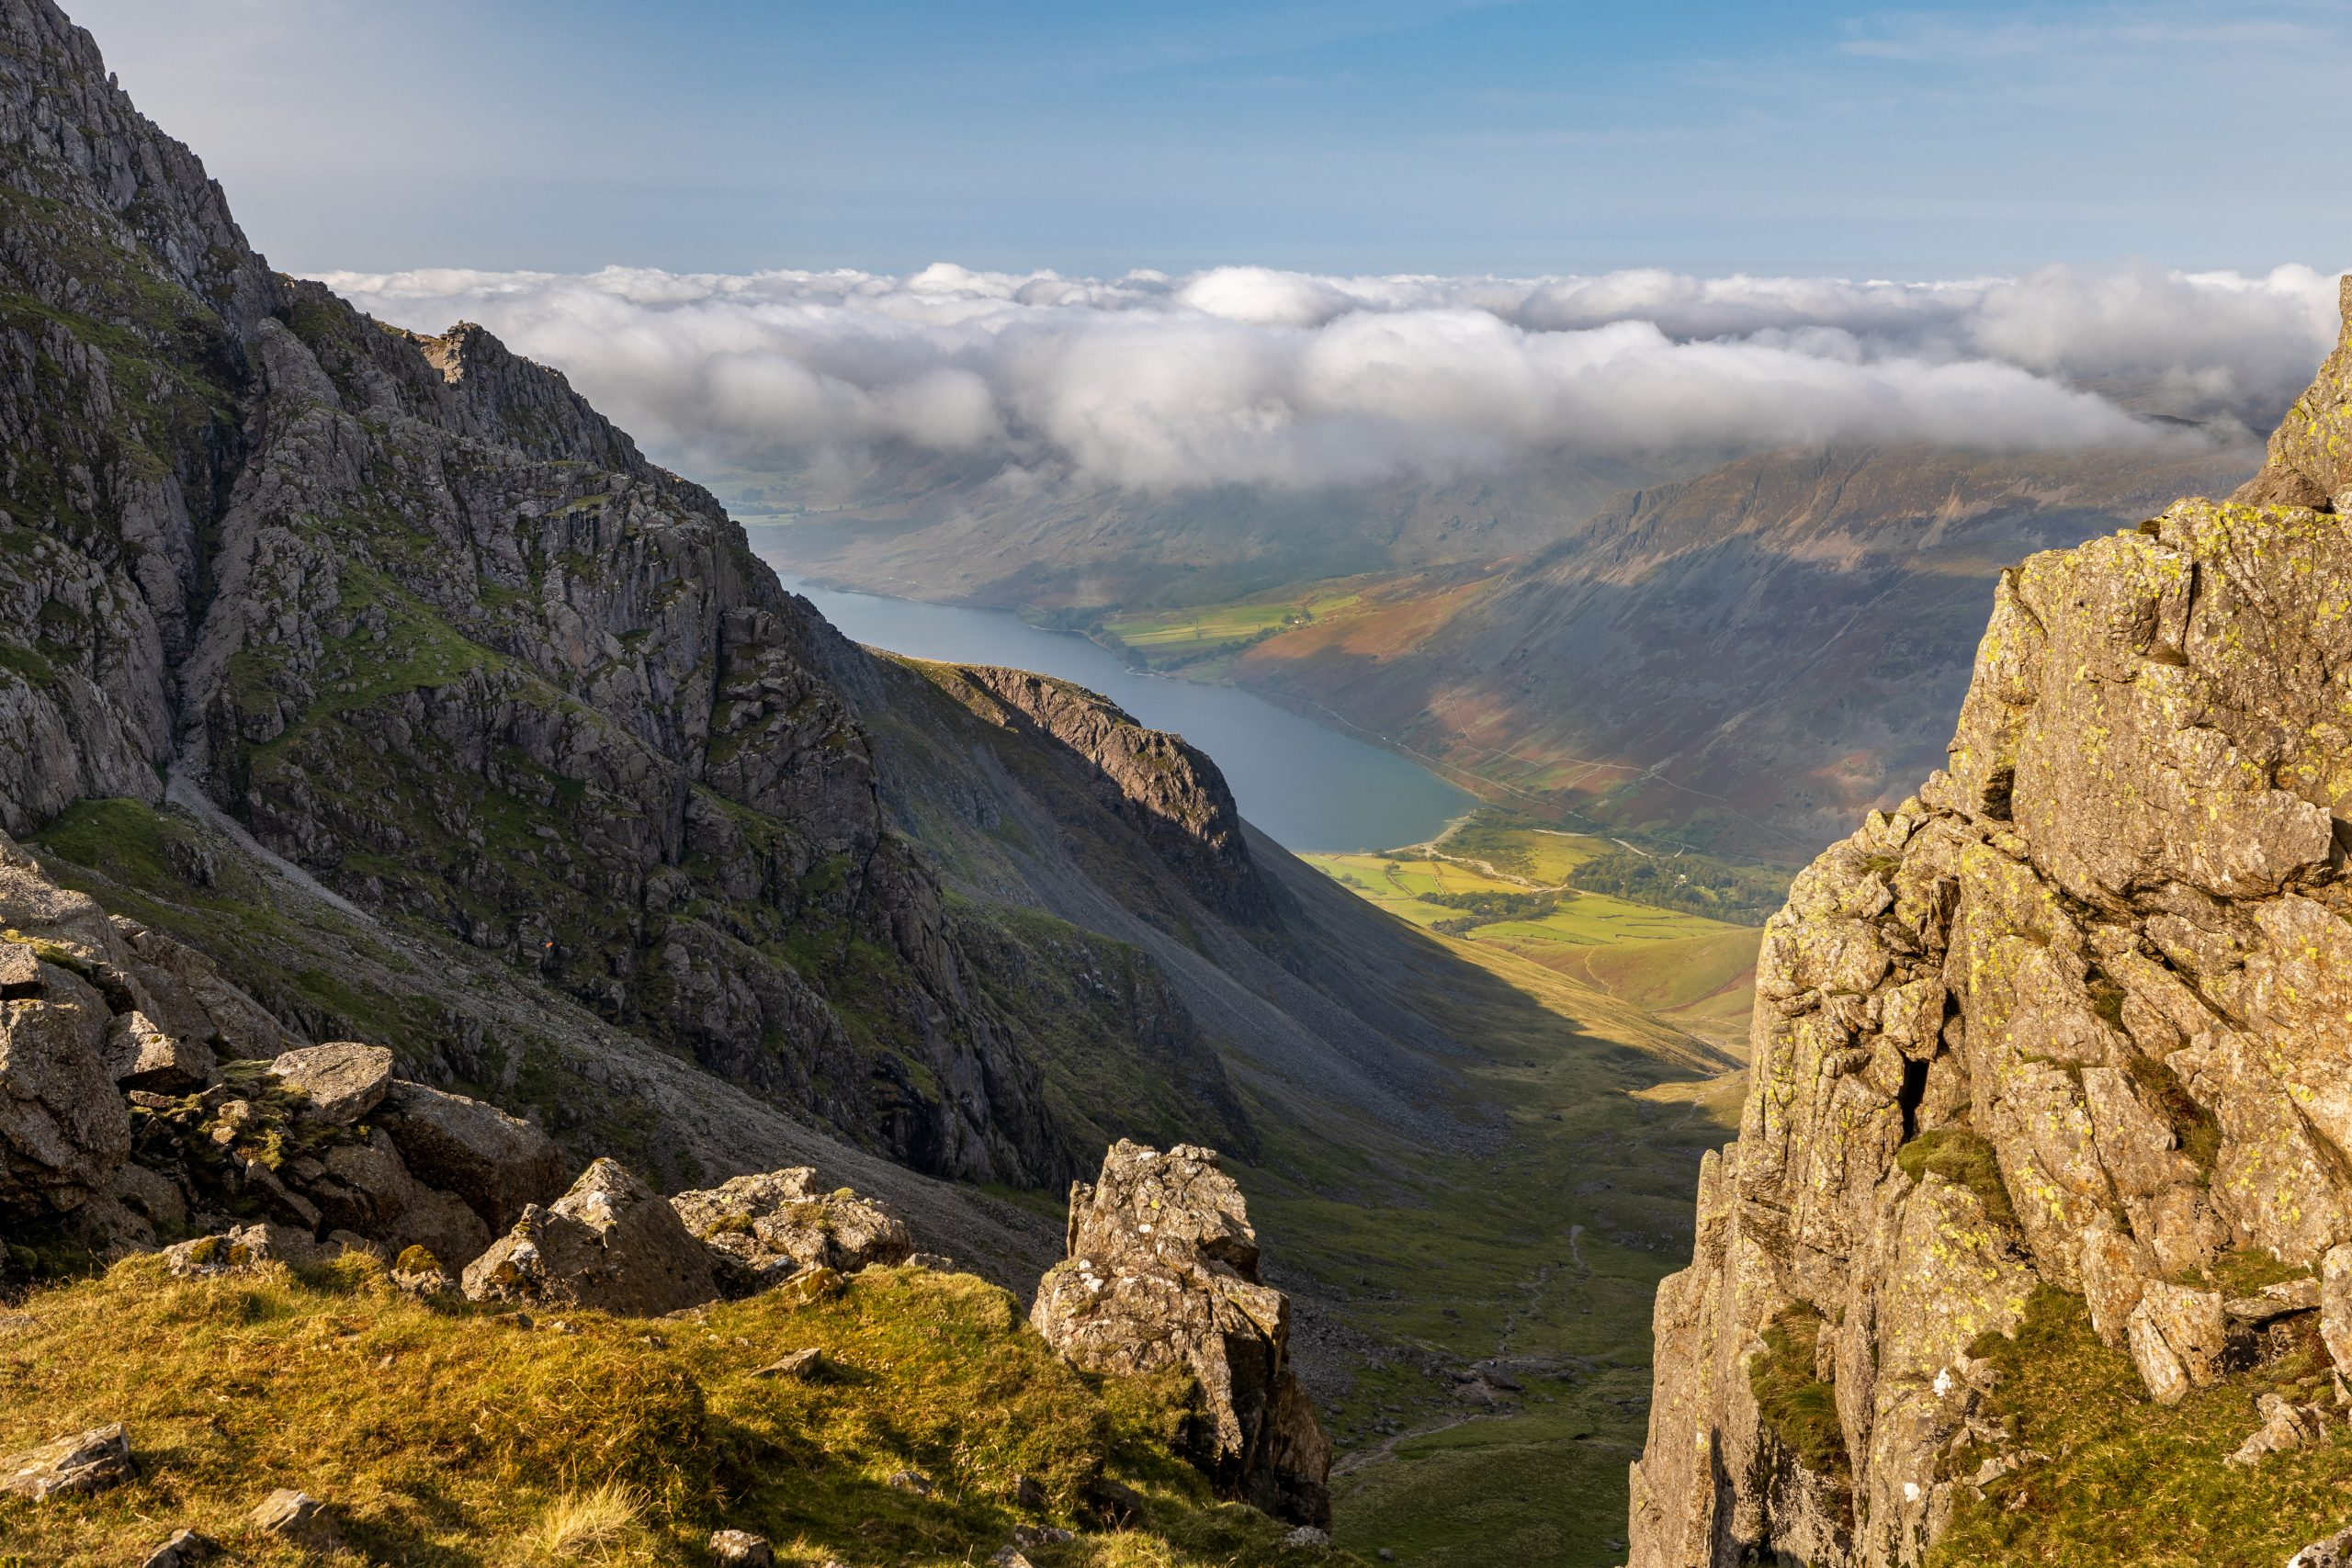 The view from Mickledore down to Wasdale Head during a guided walk up Scafell Pike in the Lake District